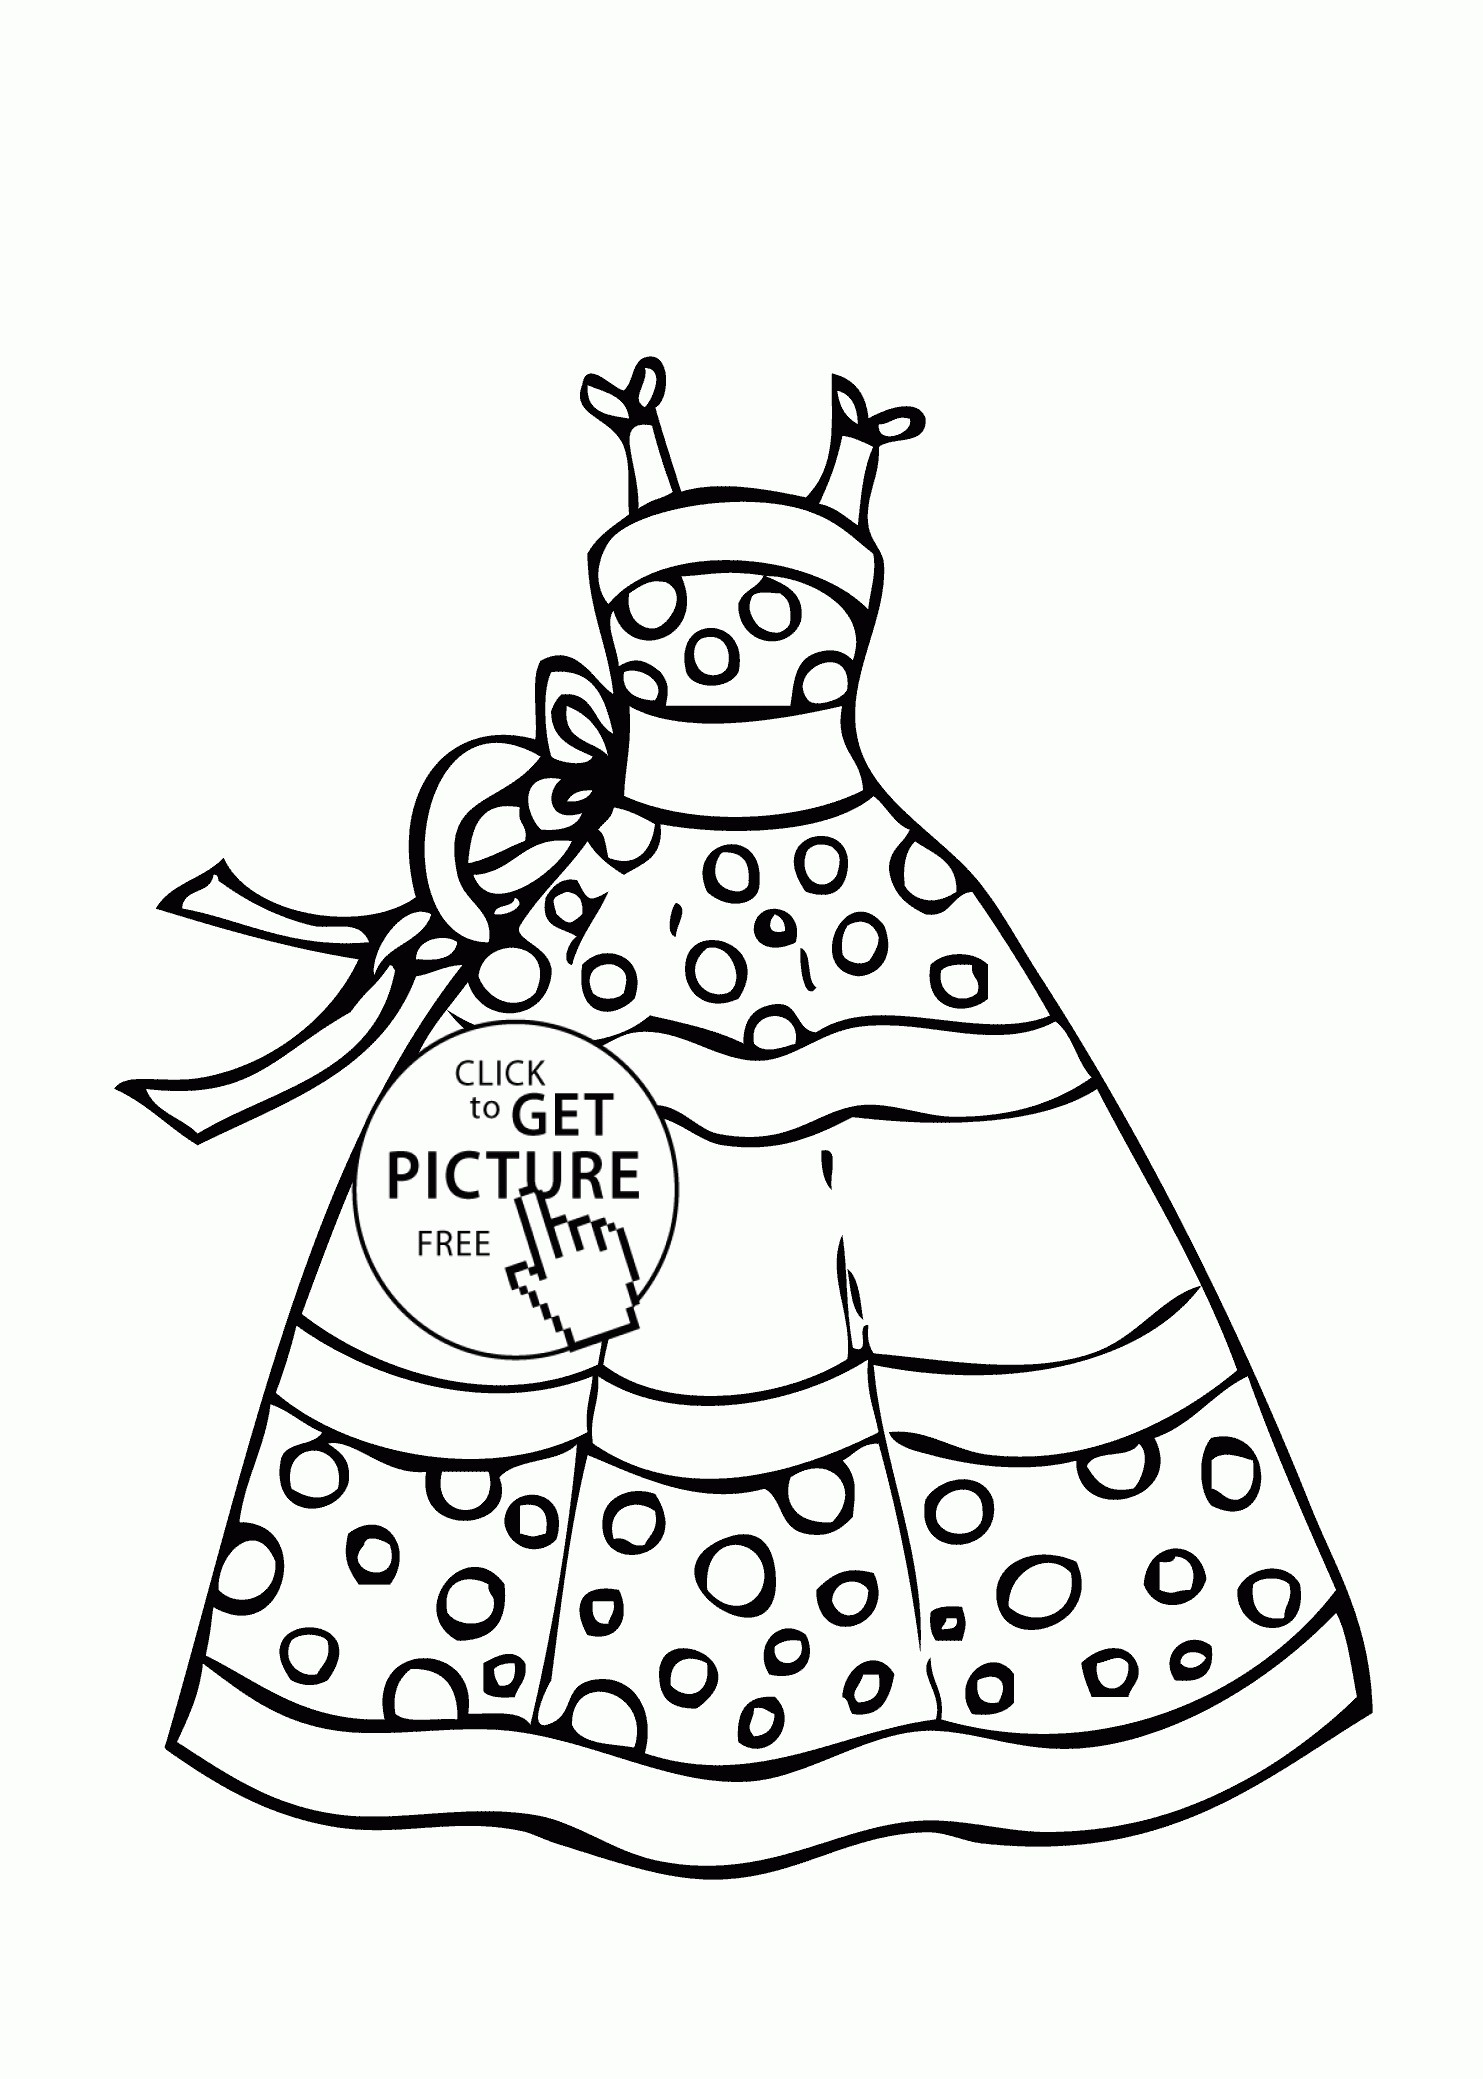 1483x2079 Dress With Bows Coloring Page For Girls Inspirational Coloring